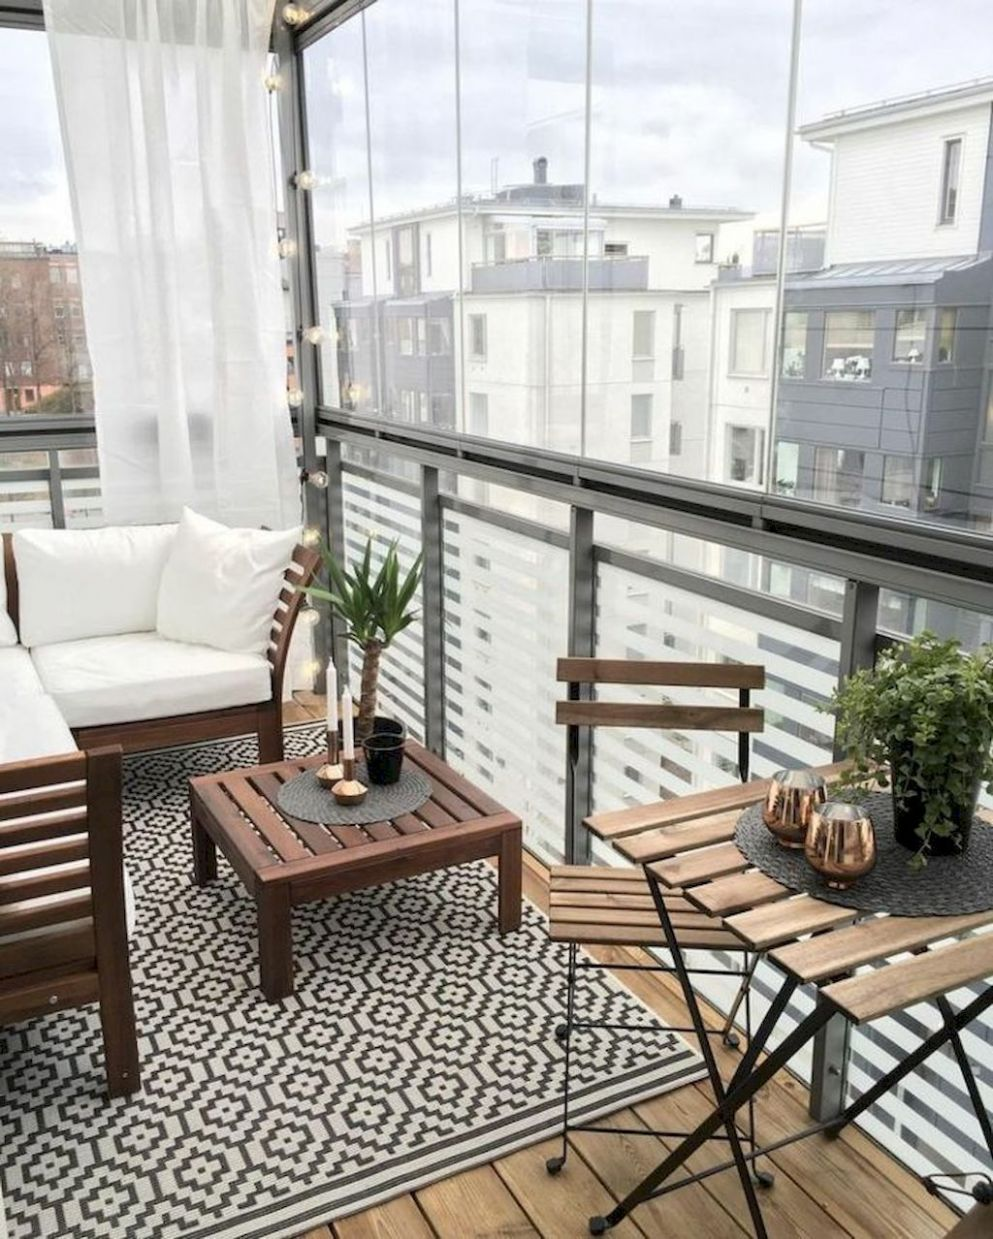 12 Small Apartment Balcony Decorating Ideas | Small balcony design ...